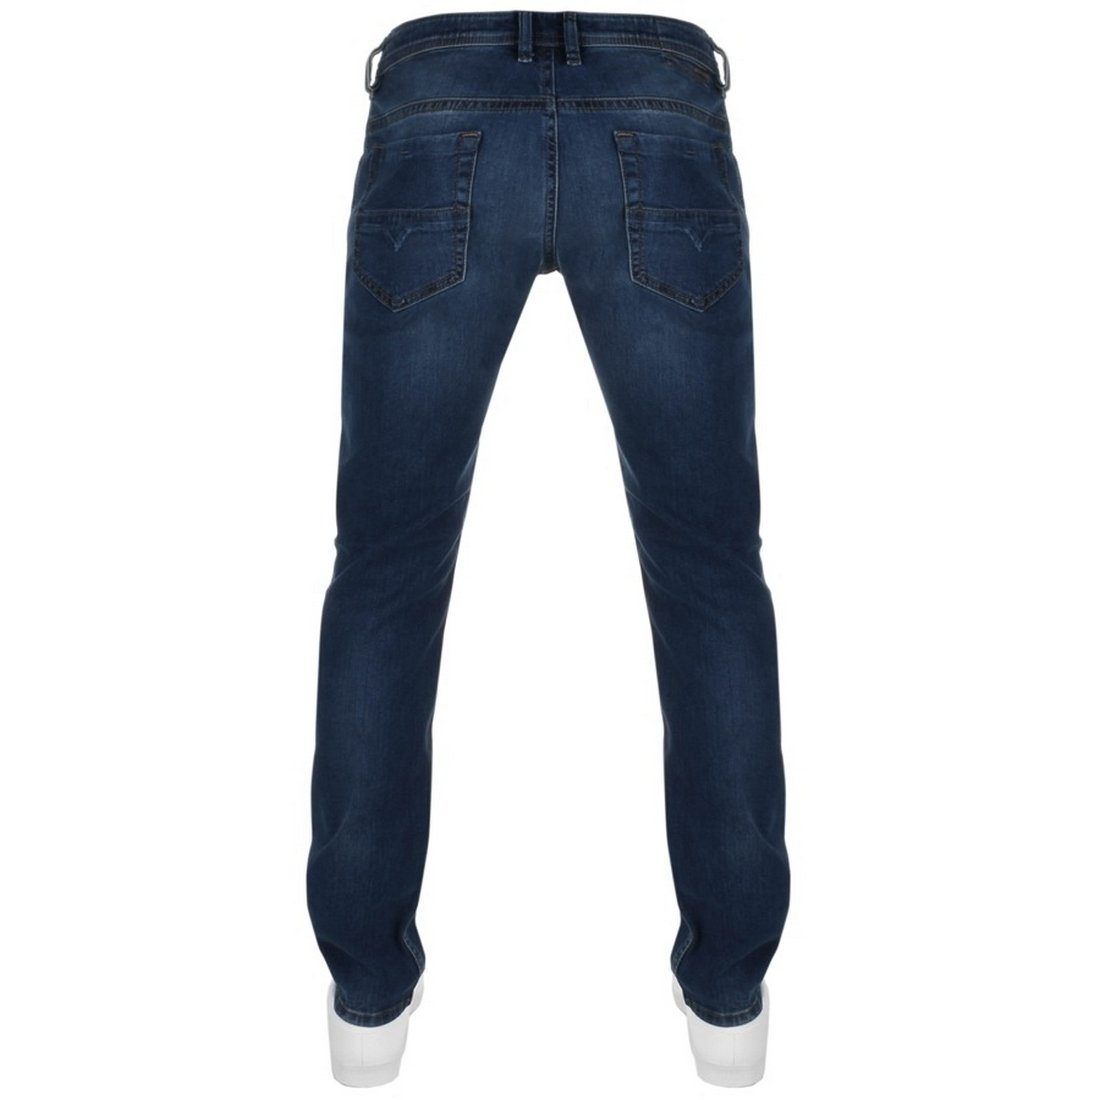 aadc1f20383 Mens Diesel Thommer 084BU Jeans Blue - 33W 30L: Amazon.co.uk: Clothing